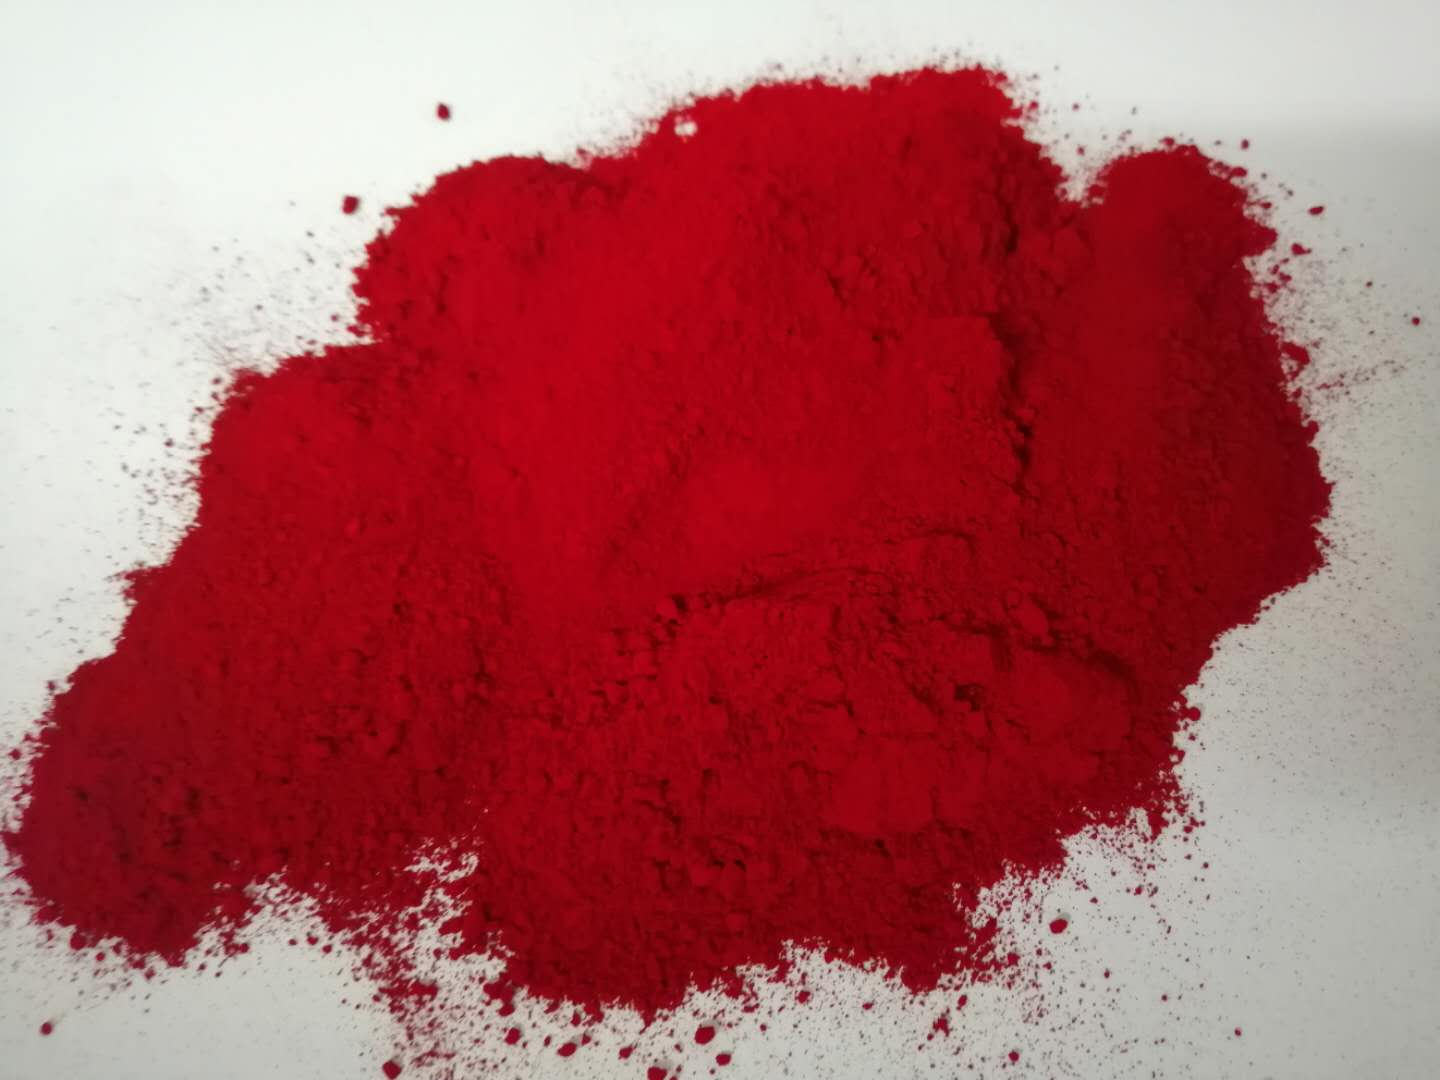 Pigment Red 57:1 Insoluble In Water High Heat Resistance Highly Recommend For Wax Coating, Plastic And Oil Based